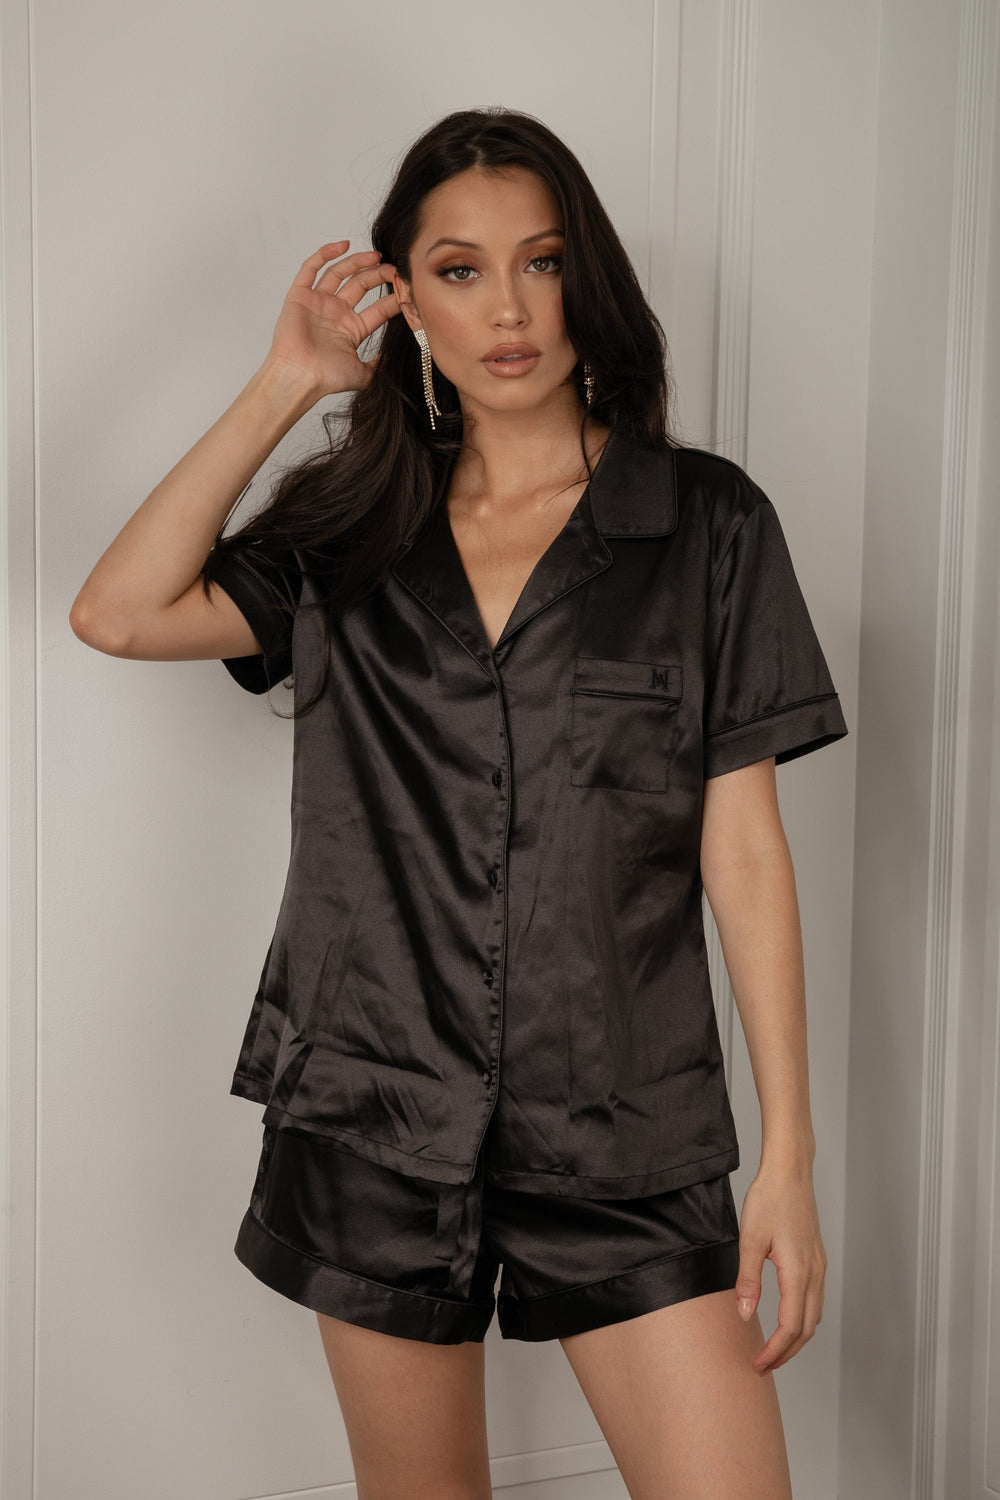 Claire Satin Short Sleeve Pyjama Top - Black - MESHKI ?id=16060357279819